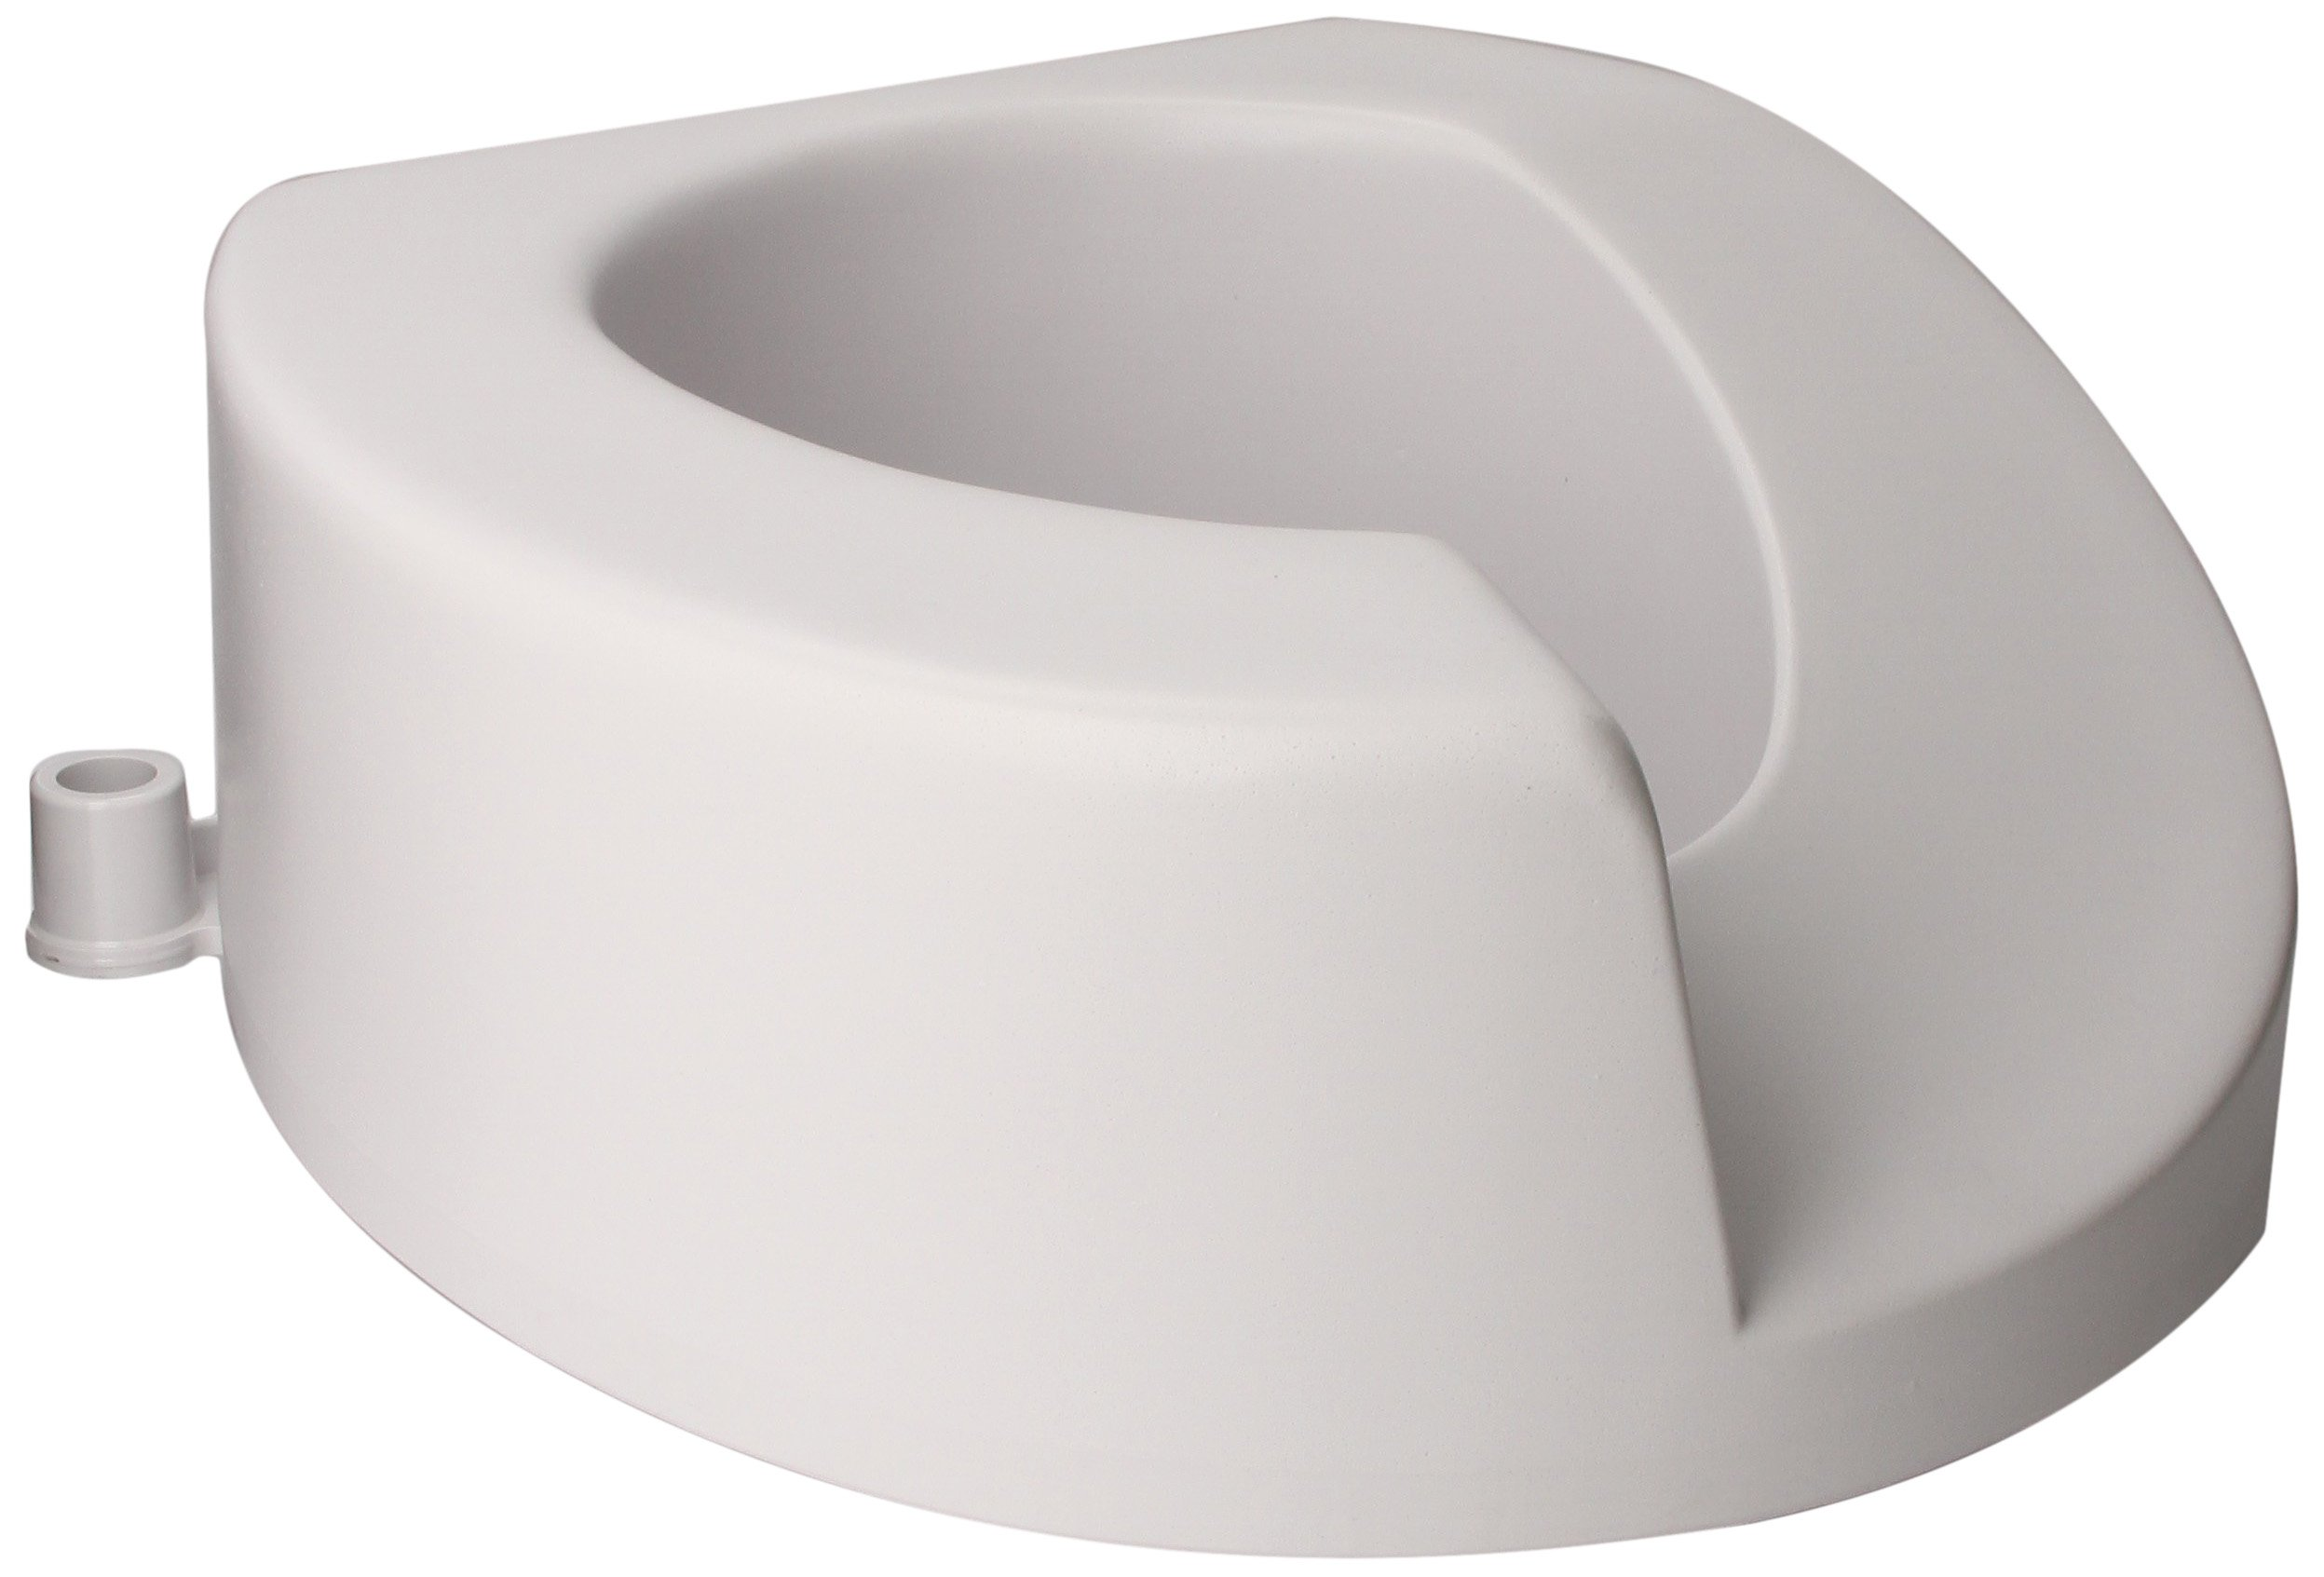 Maddak Left Elongated Elevated Toilet Seat (725901001) by SP Ableware